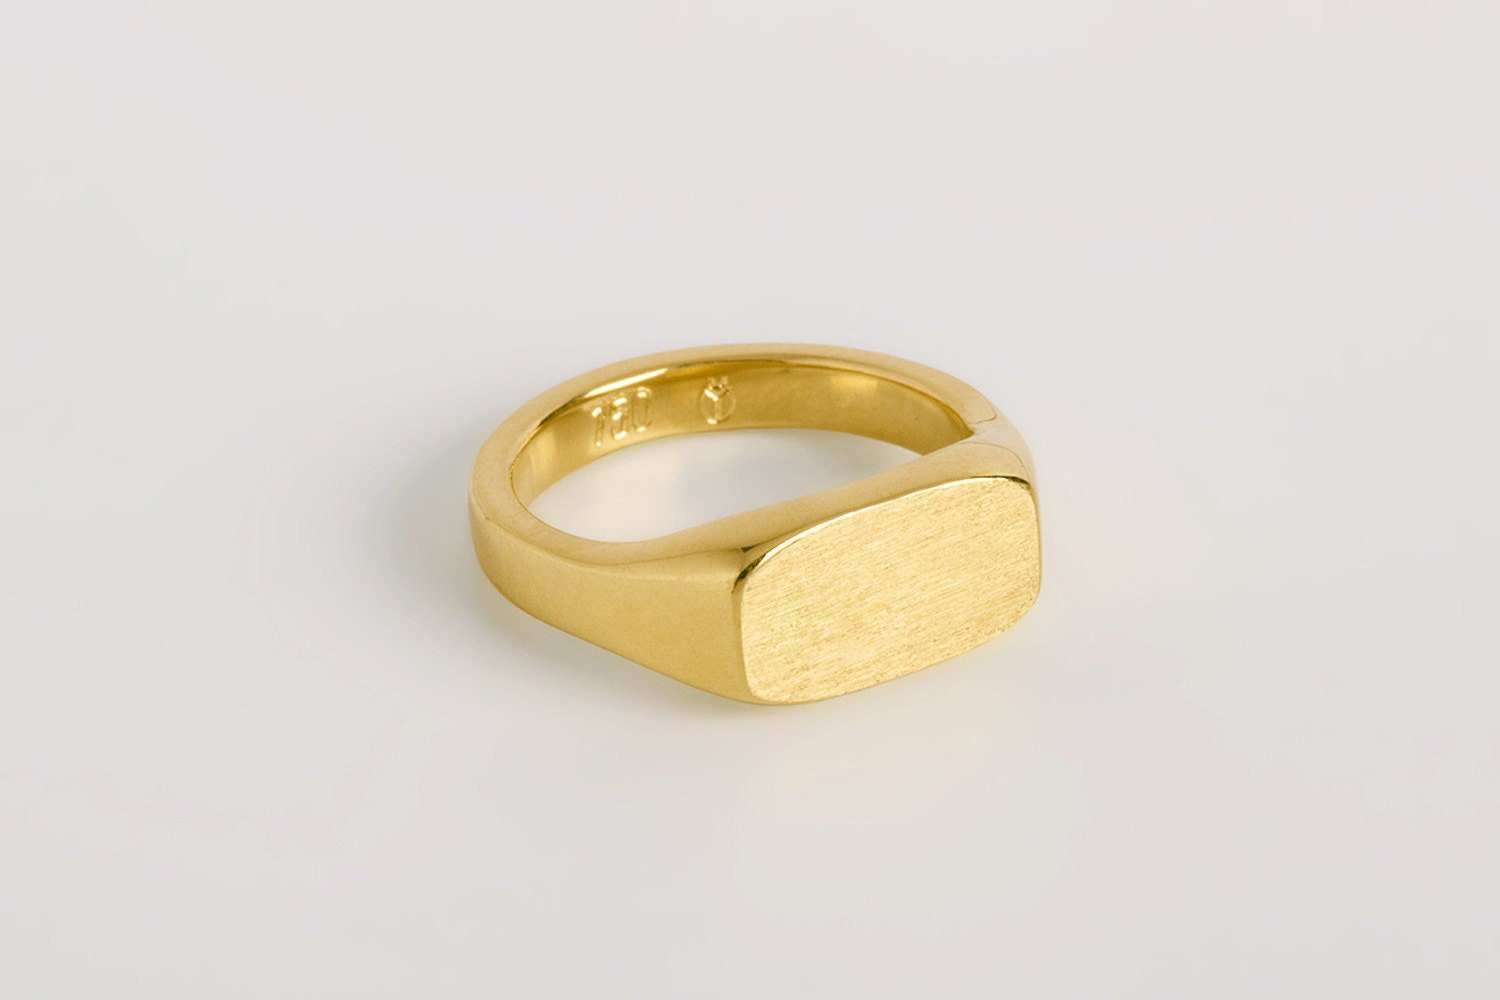 Pinky Signet Ring Rectangle Solid 14k 18k Yellow Gold Band